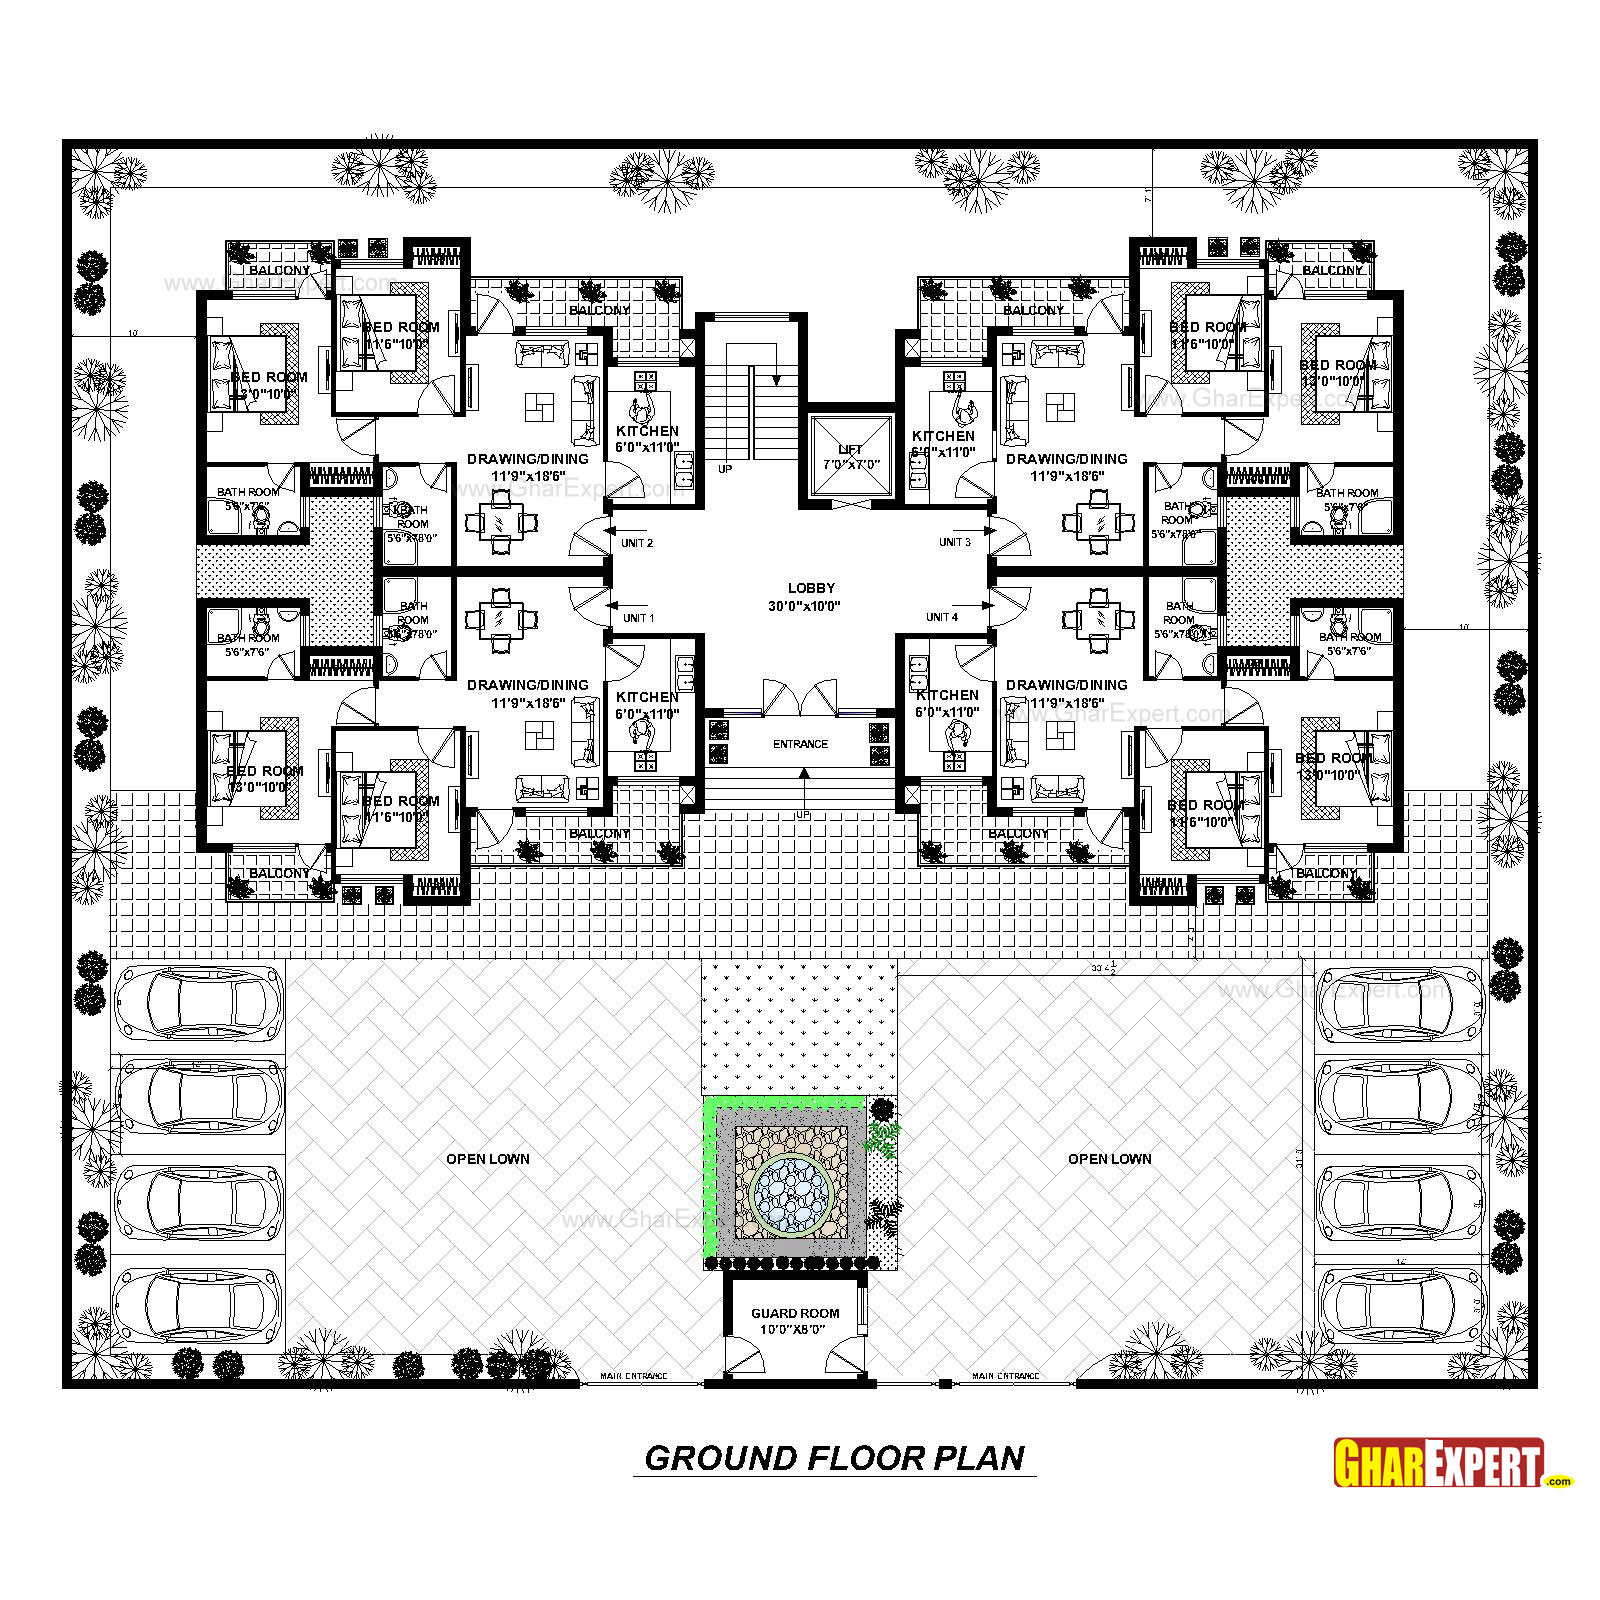 100 450 square foot apartment floor plan luxury 100 for 450 sq ft floor plan